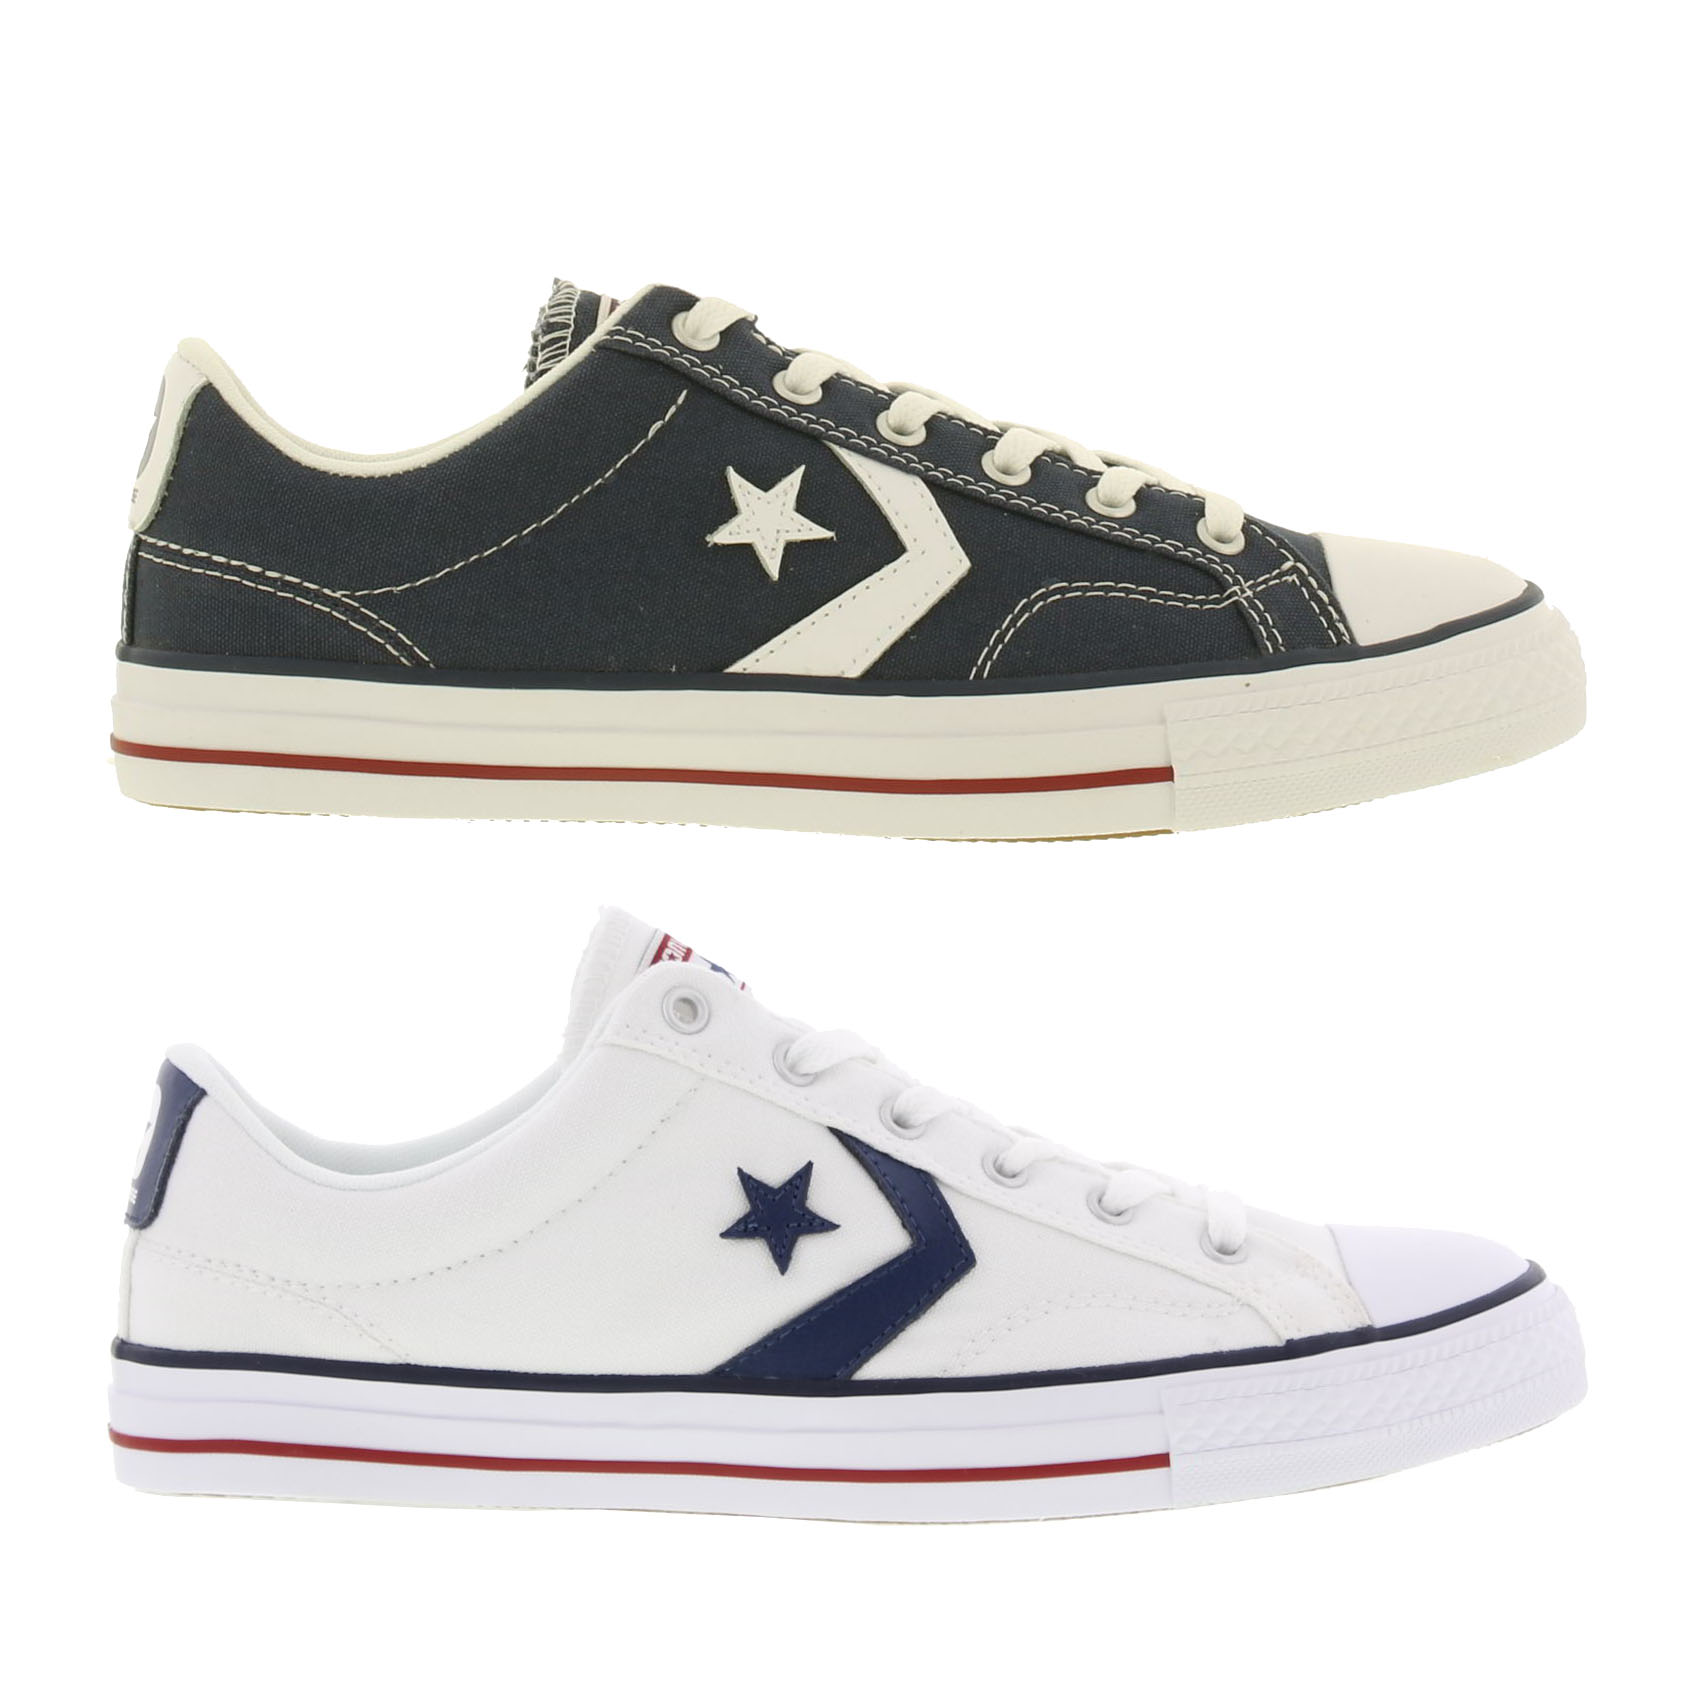 732c48aa77c5b5 Details about Converse Star Player Mens Blue White Canvas Trainers Shoes  Size UK 7-11